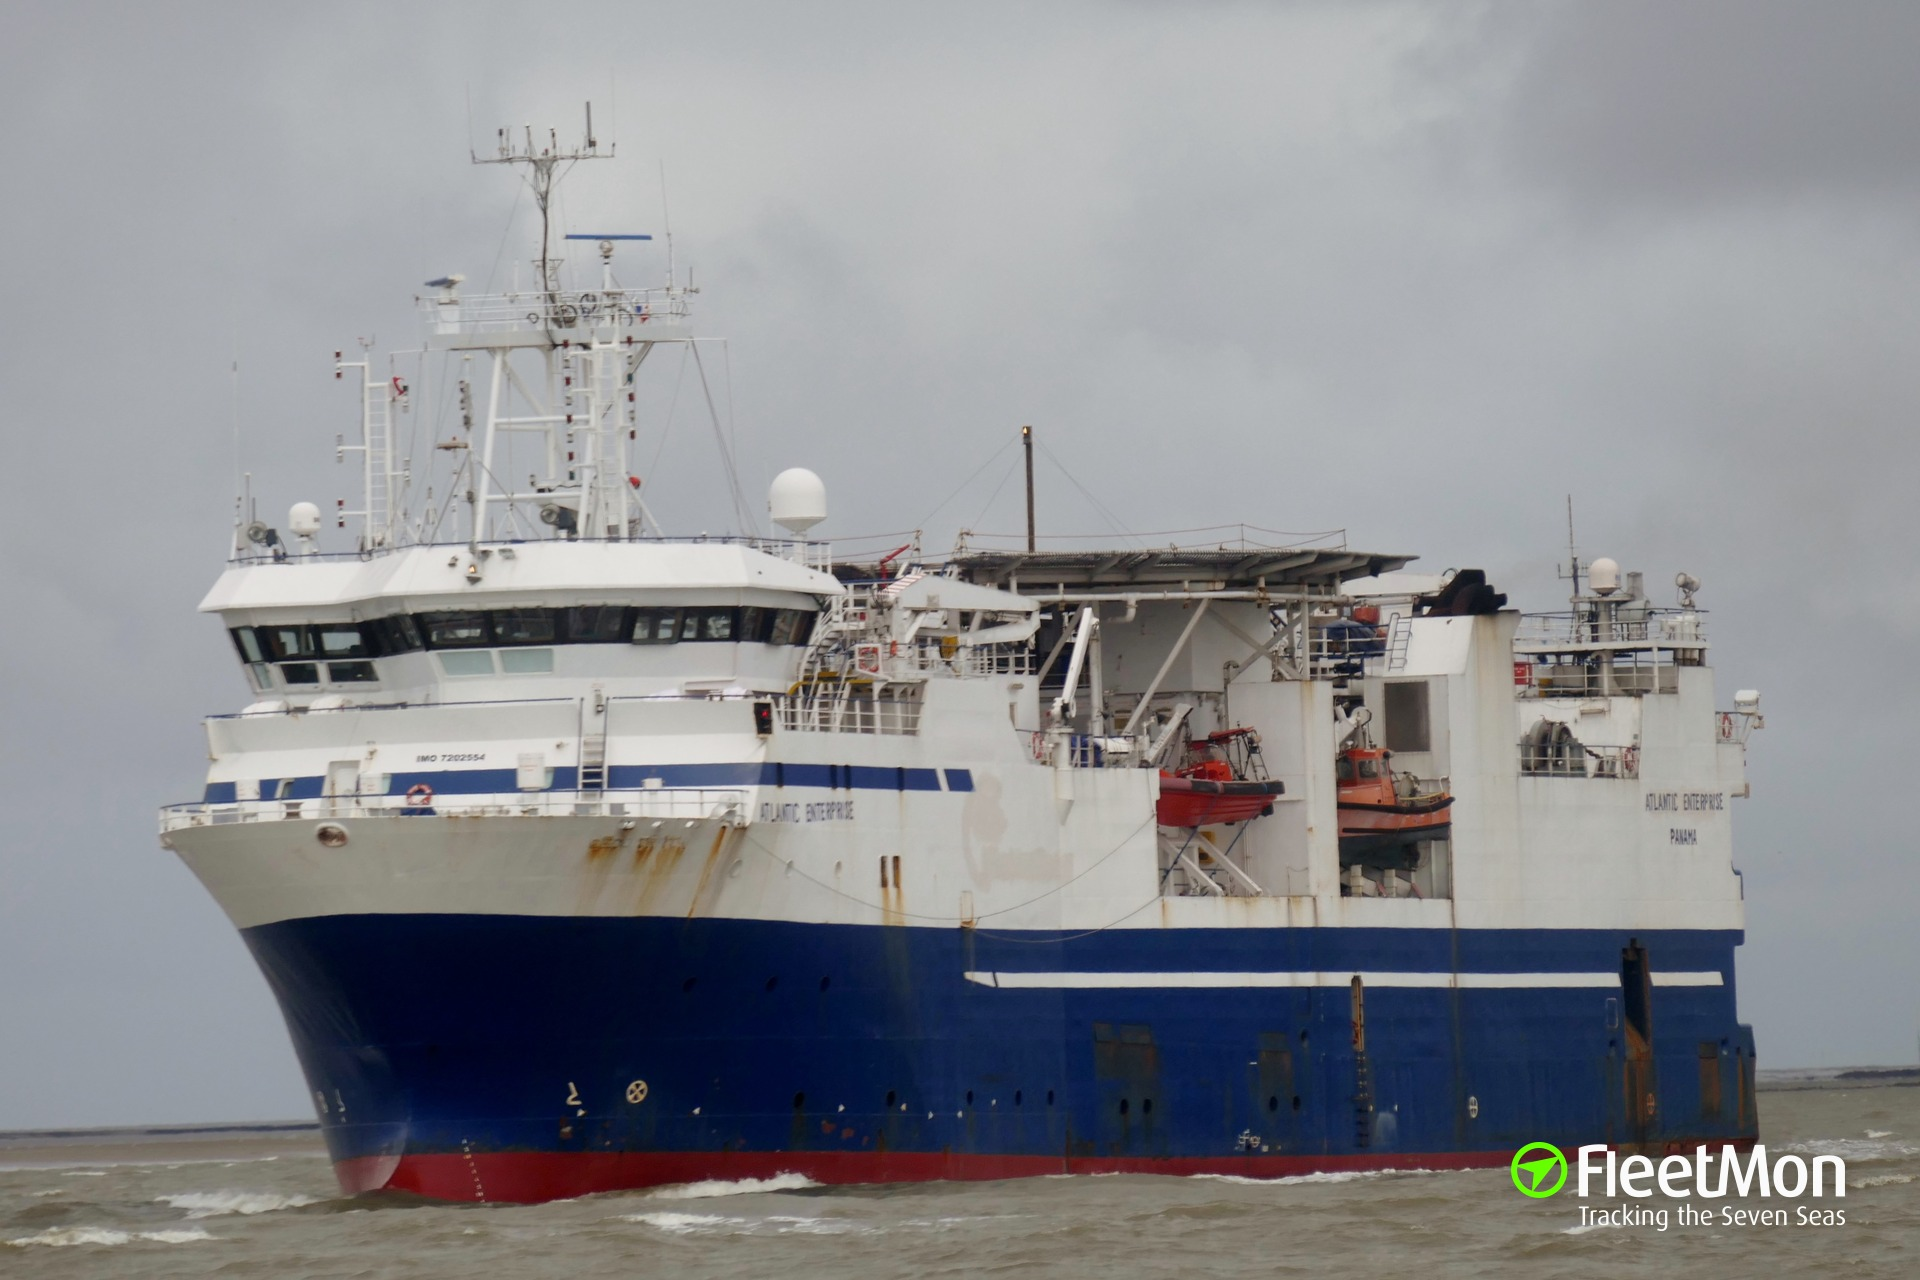 Research vessel ATLANTIC ENTERPRISE